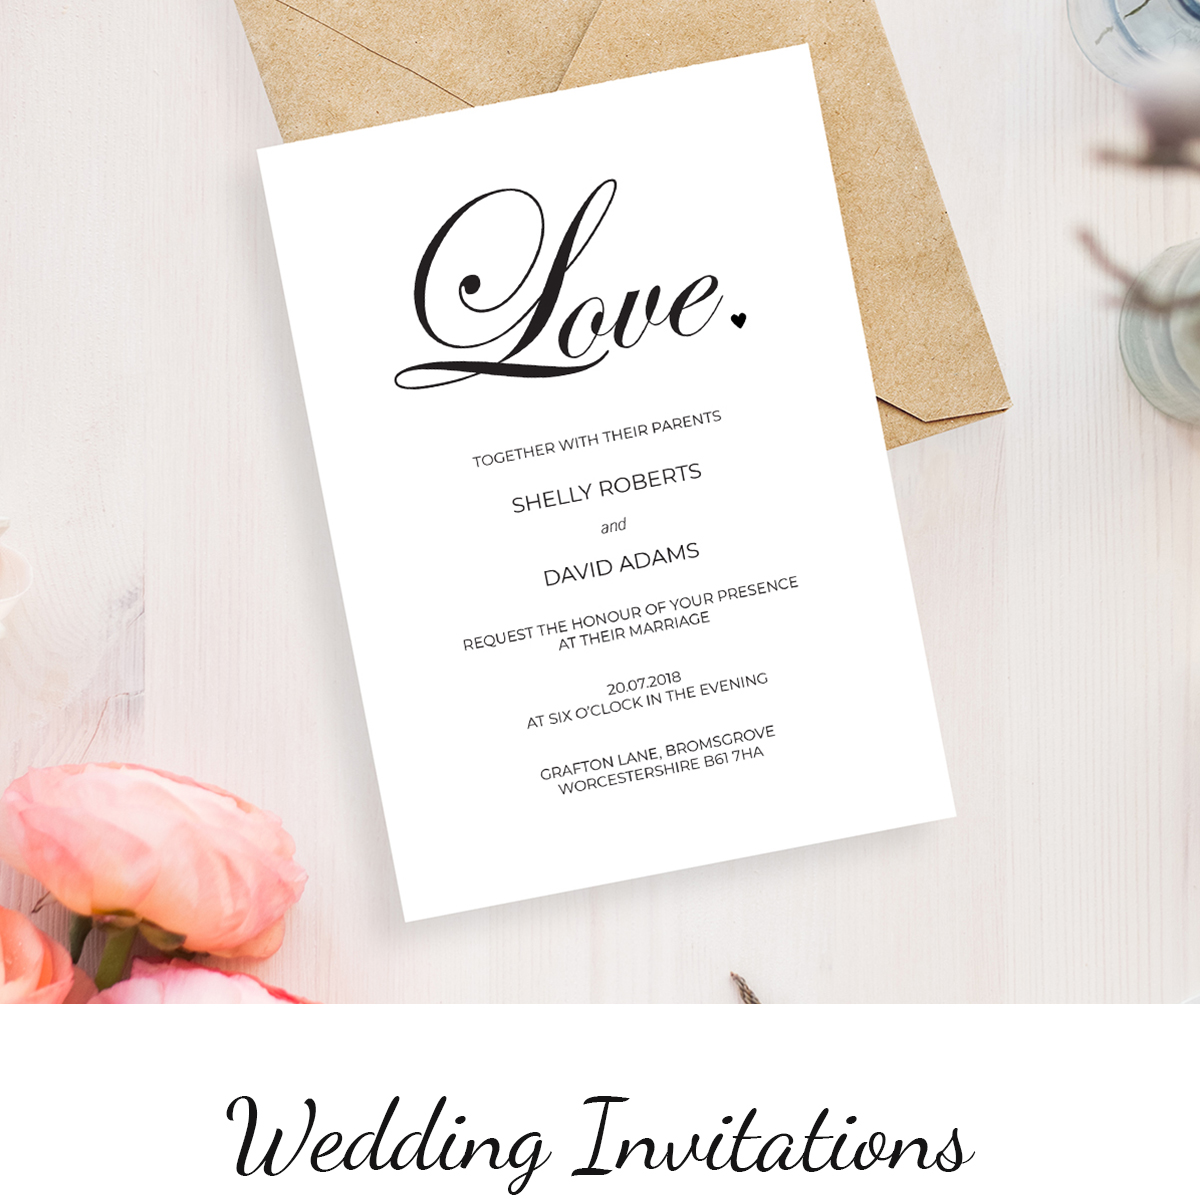 From vintage classics to modern wedding invitations styles >       Prices from 60p each